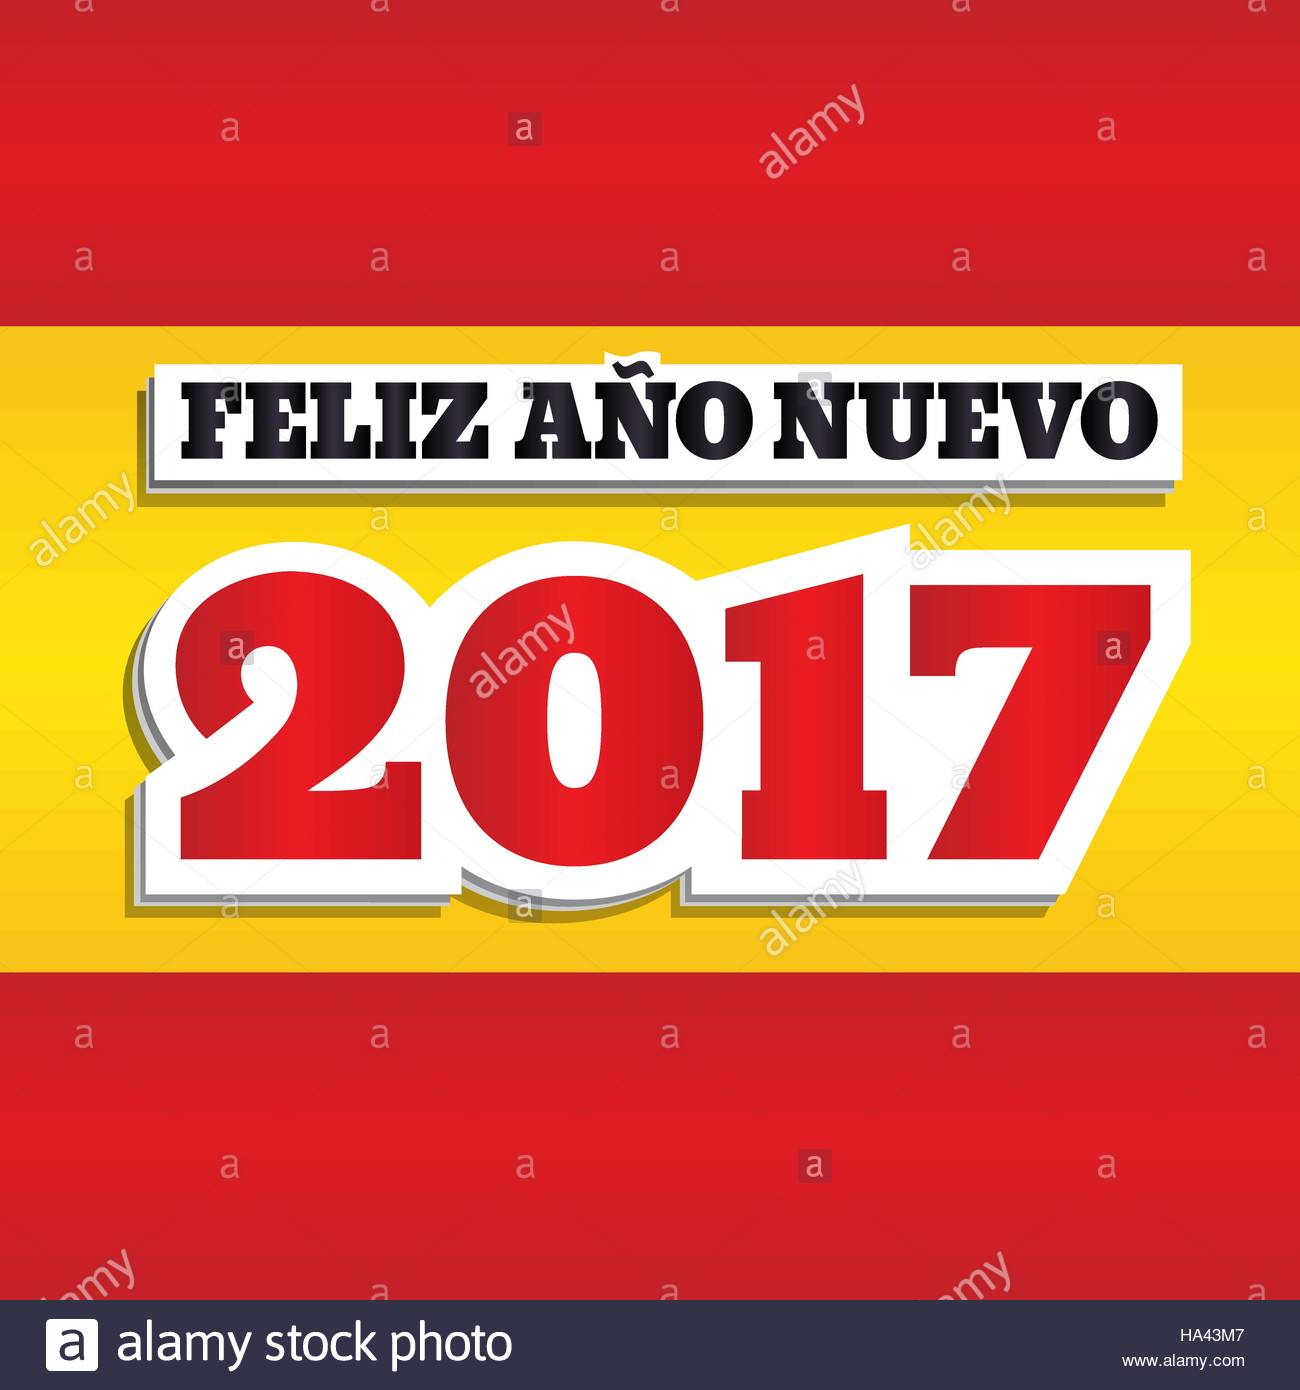 Vector greeting card with text happy new year 2017 in spanish vector greeting card with text happy new year 2017 in spanish abstract background with colors of national flag of spain square format paper style m4hsunfo